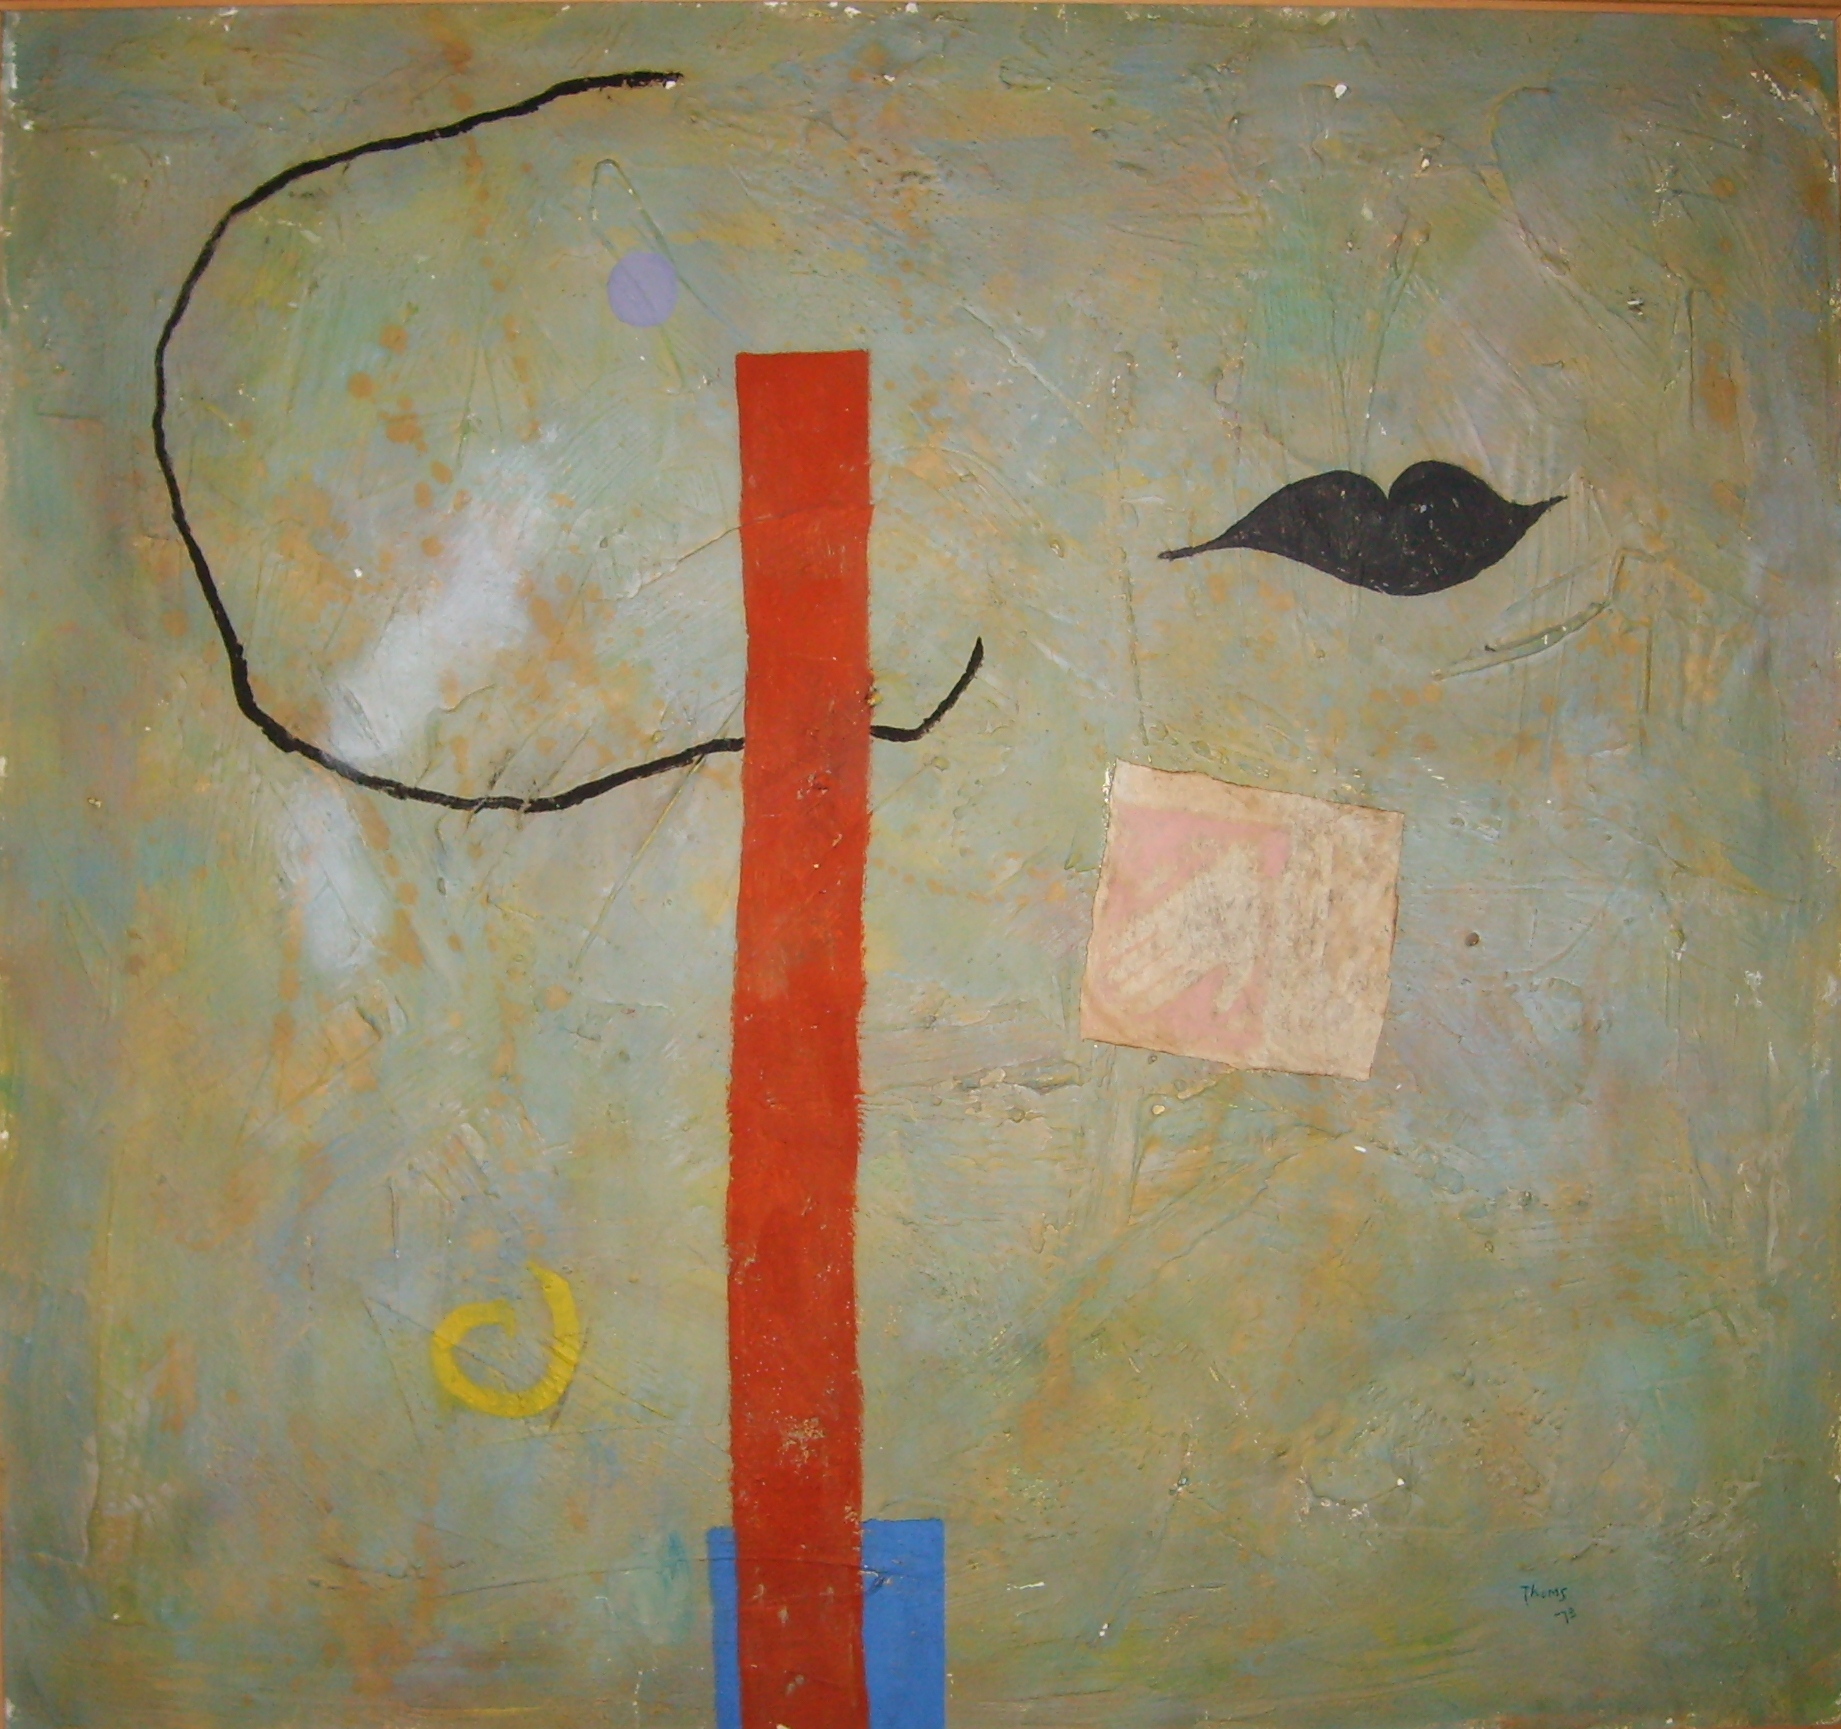 Black Lips & Vertical. 96 x 90 cms. Oil on canvas 1973